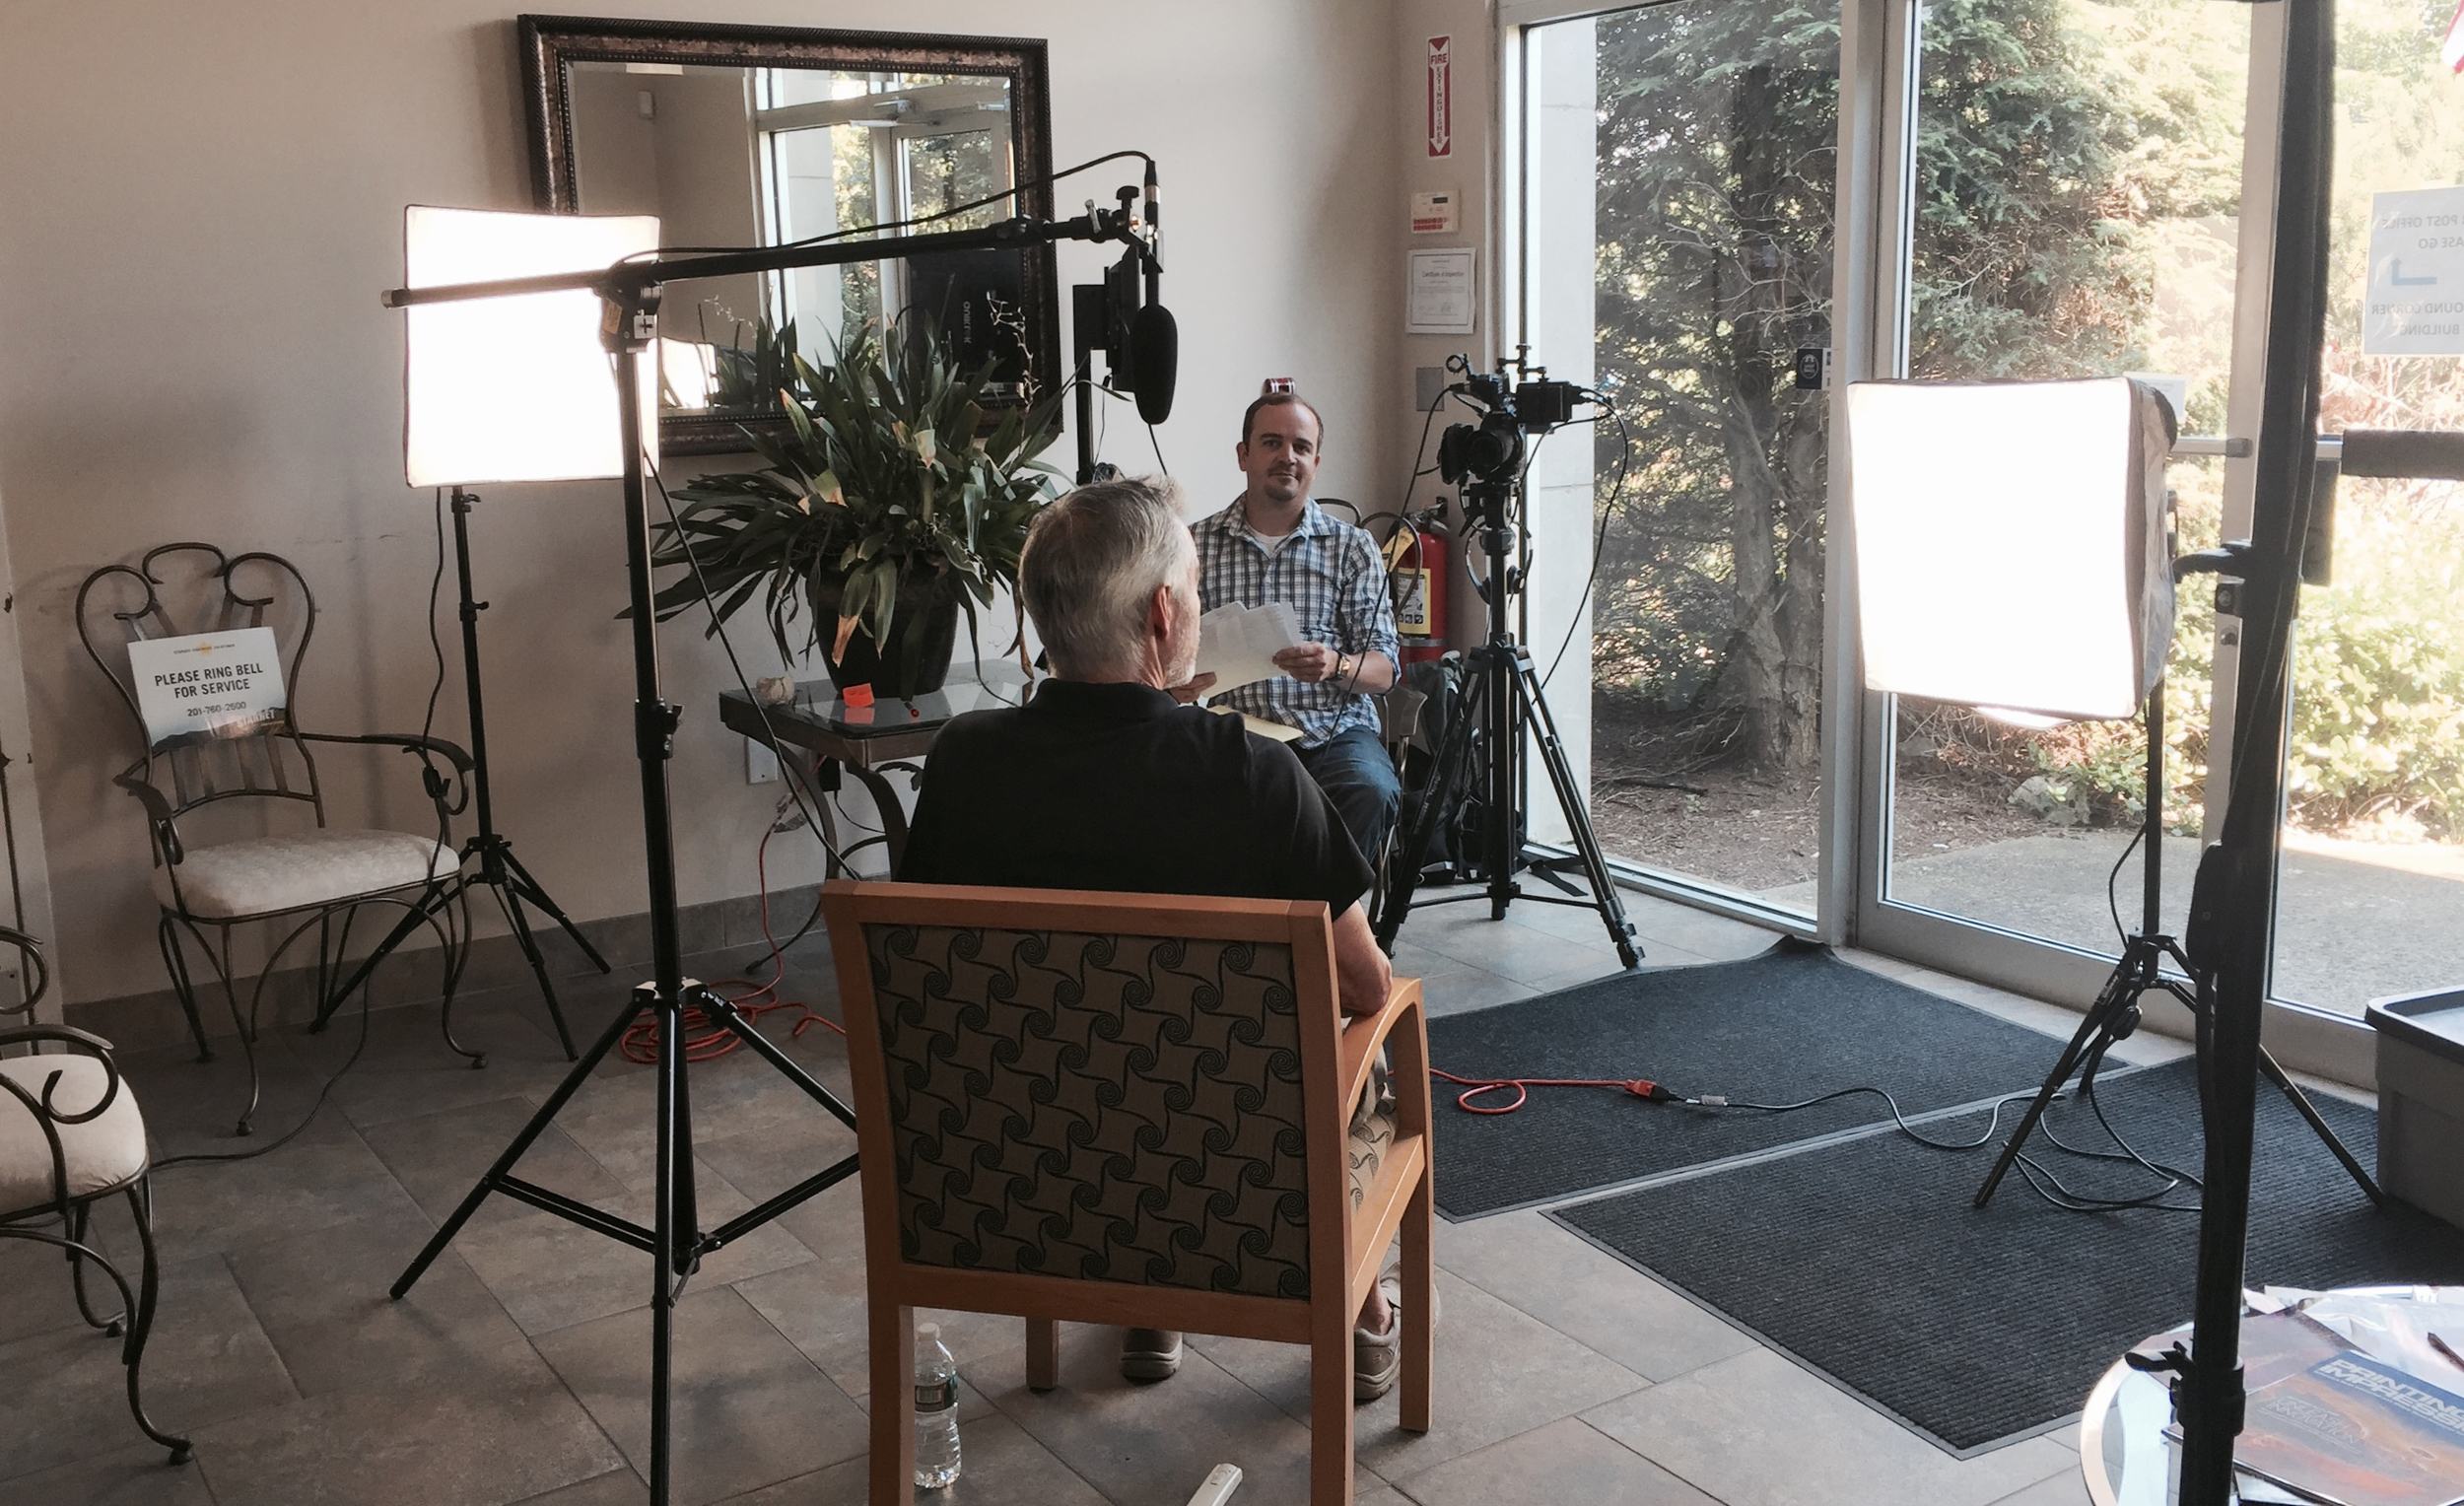 Video production has a lot to do with knowing how to use light. We're using these big windows which are providing amazing interview lighting with just a little help from our lights.